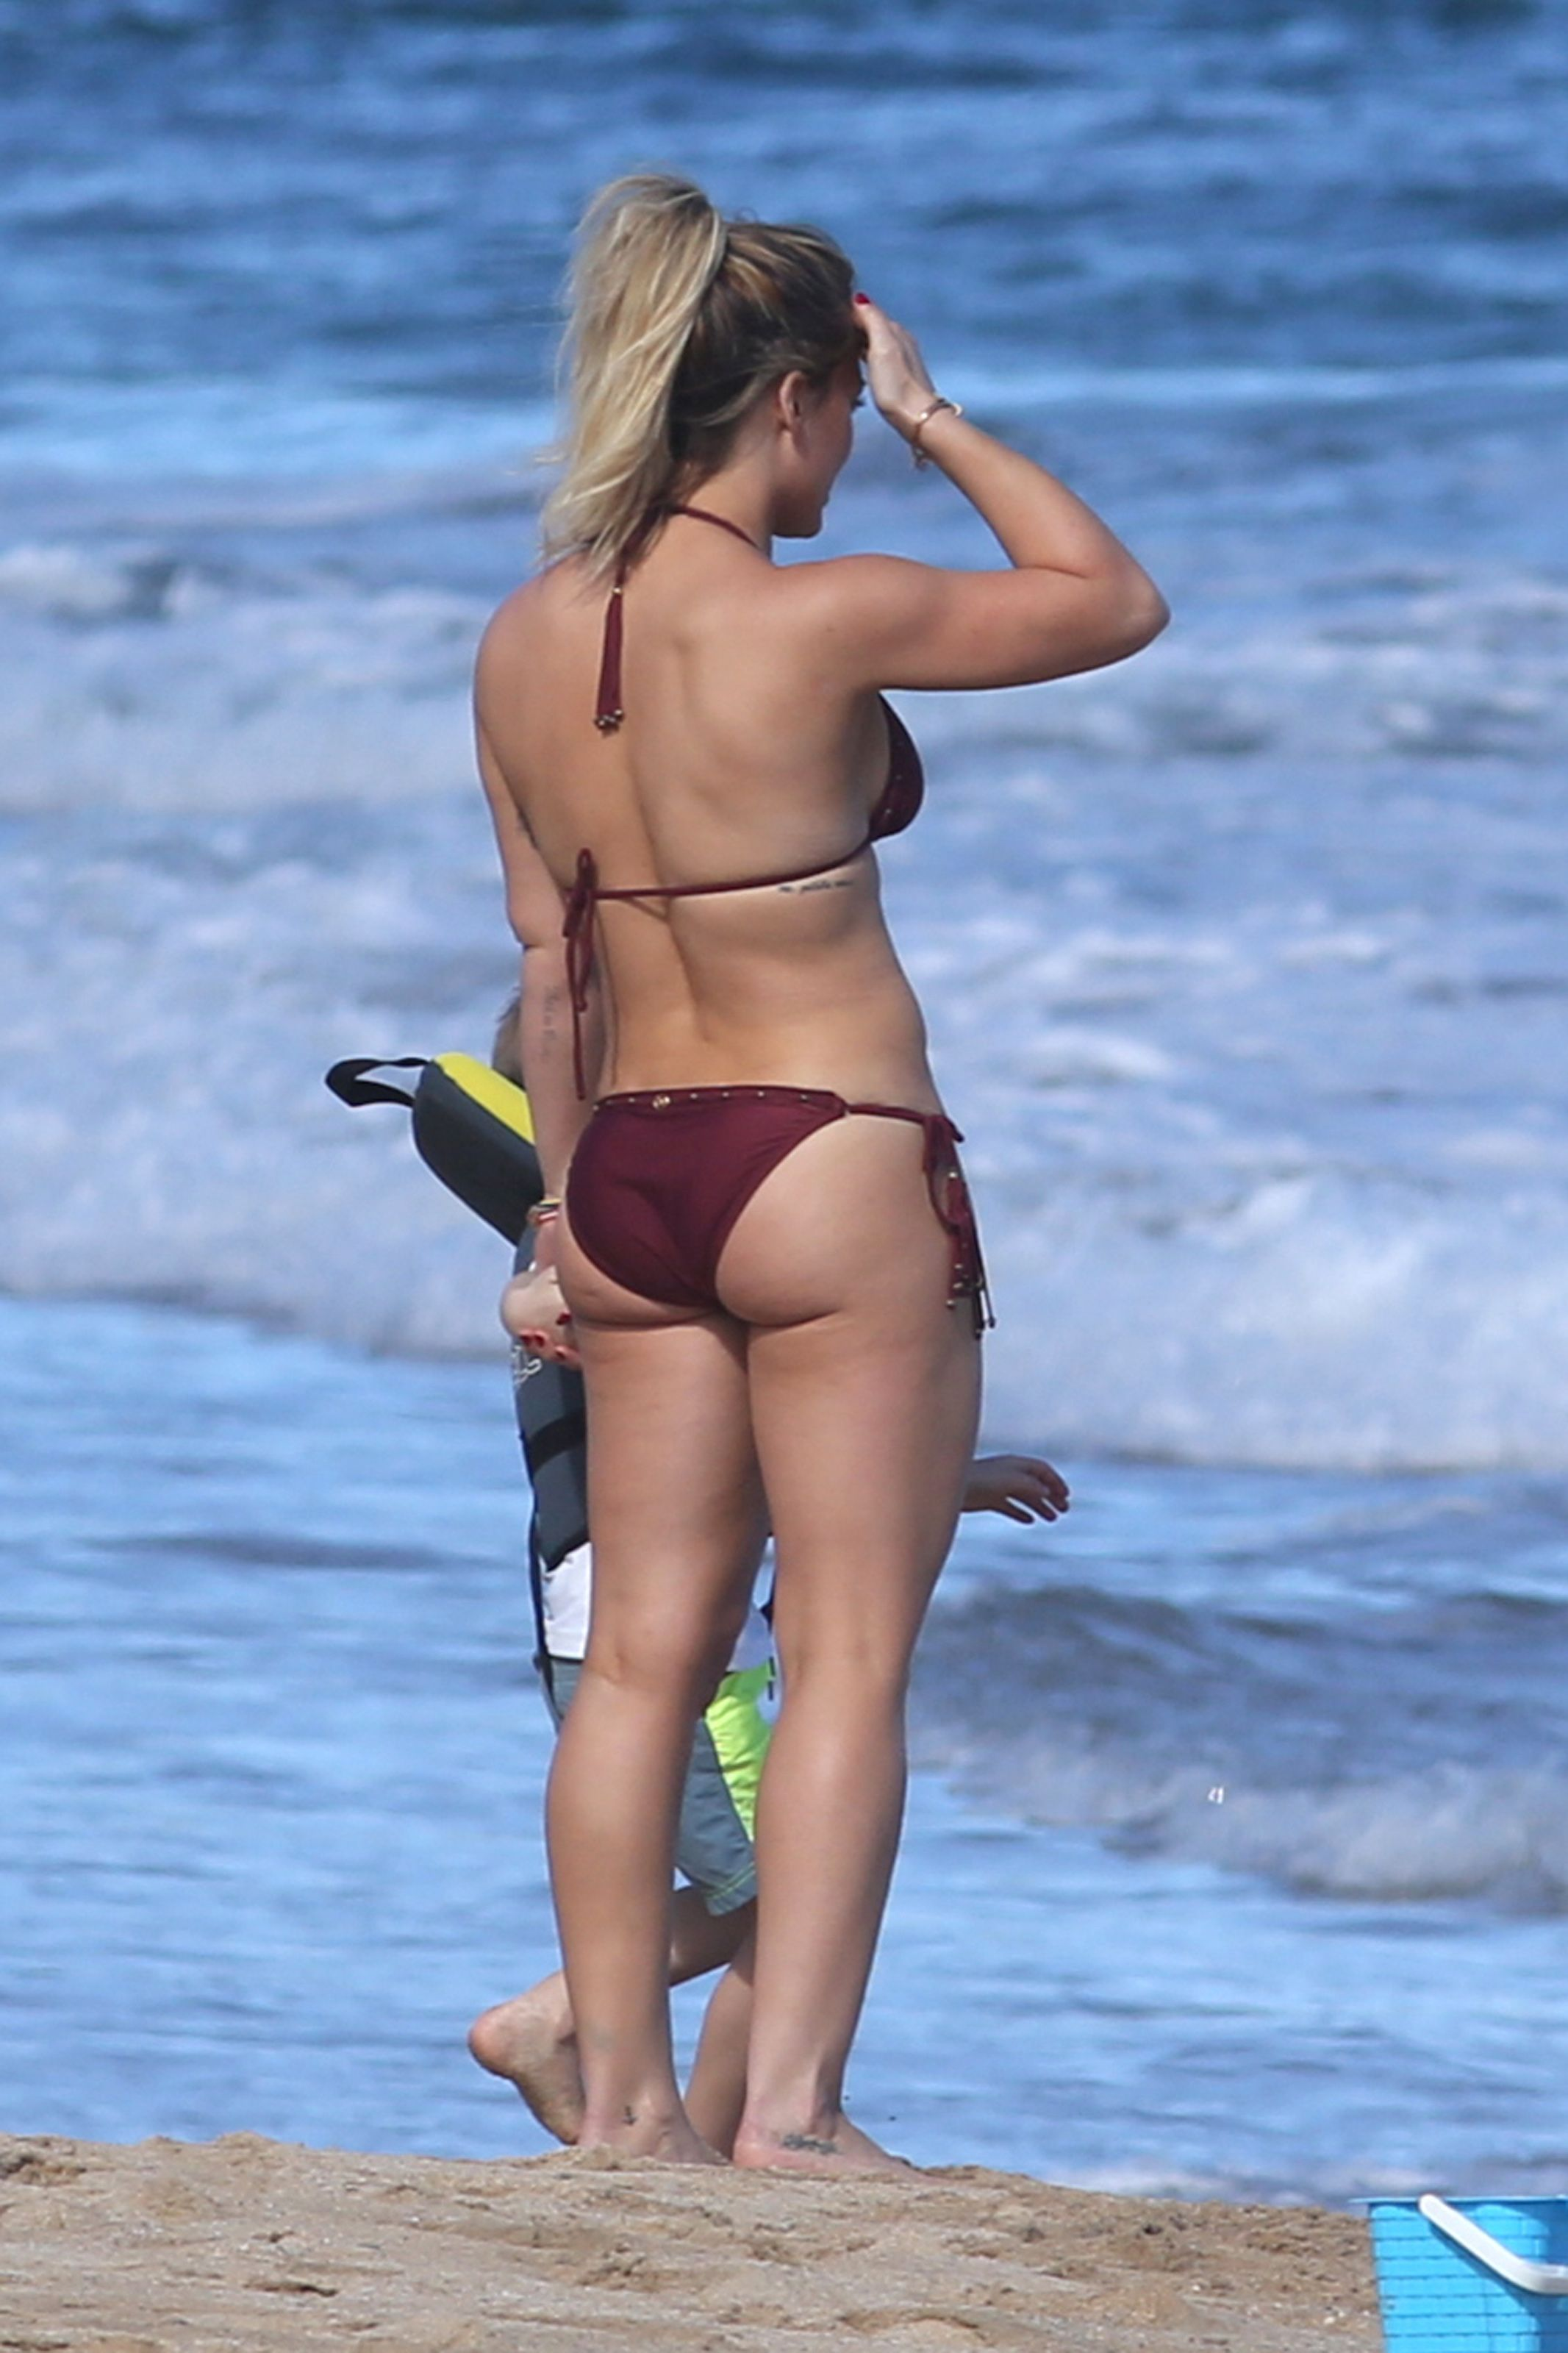 Liten nude pics of hilary duff hot woman!